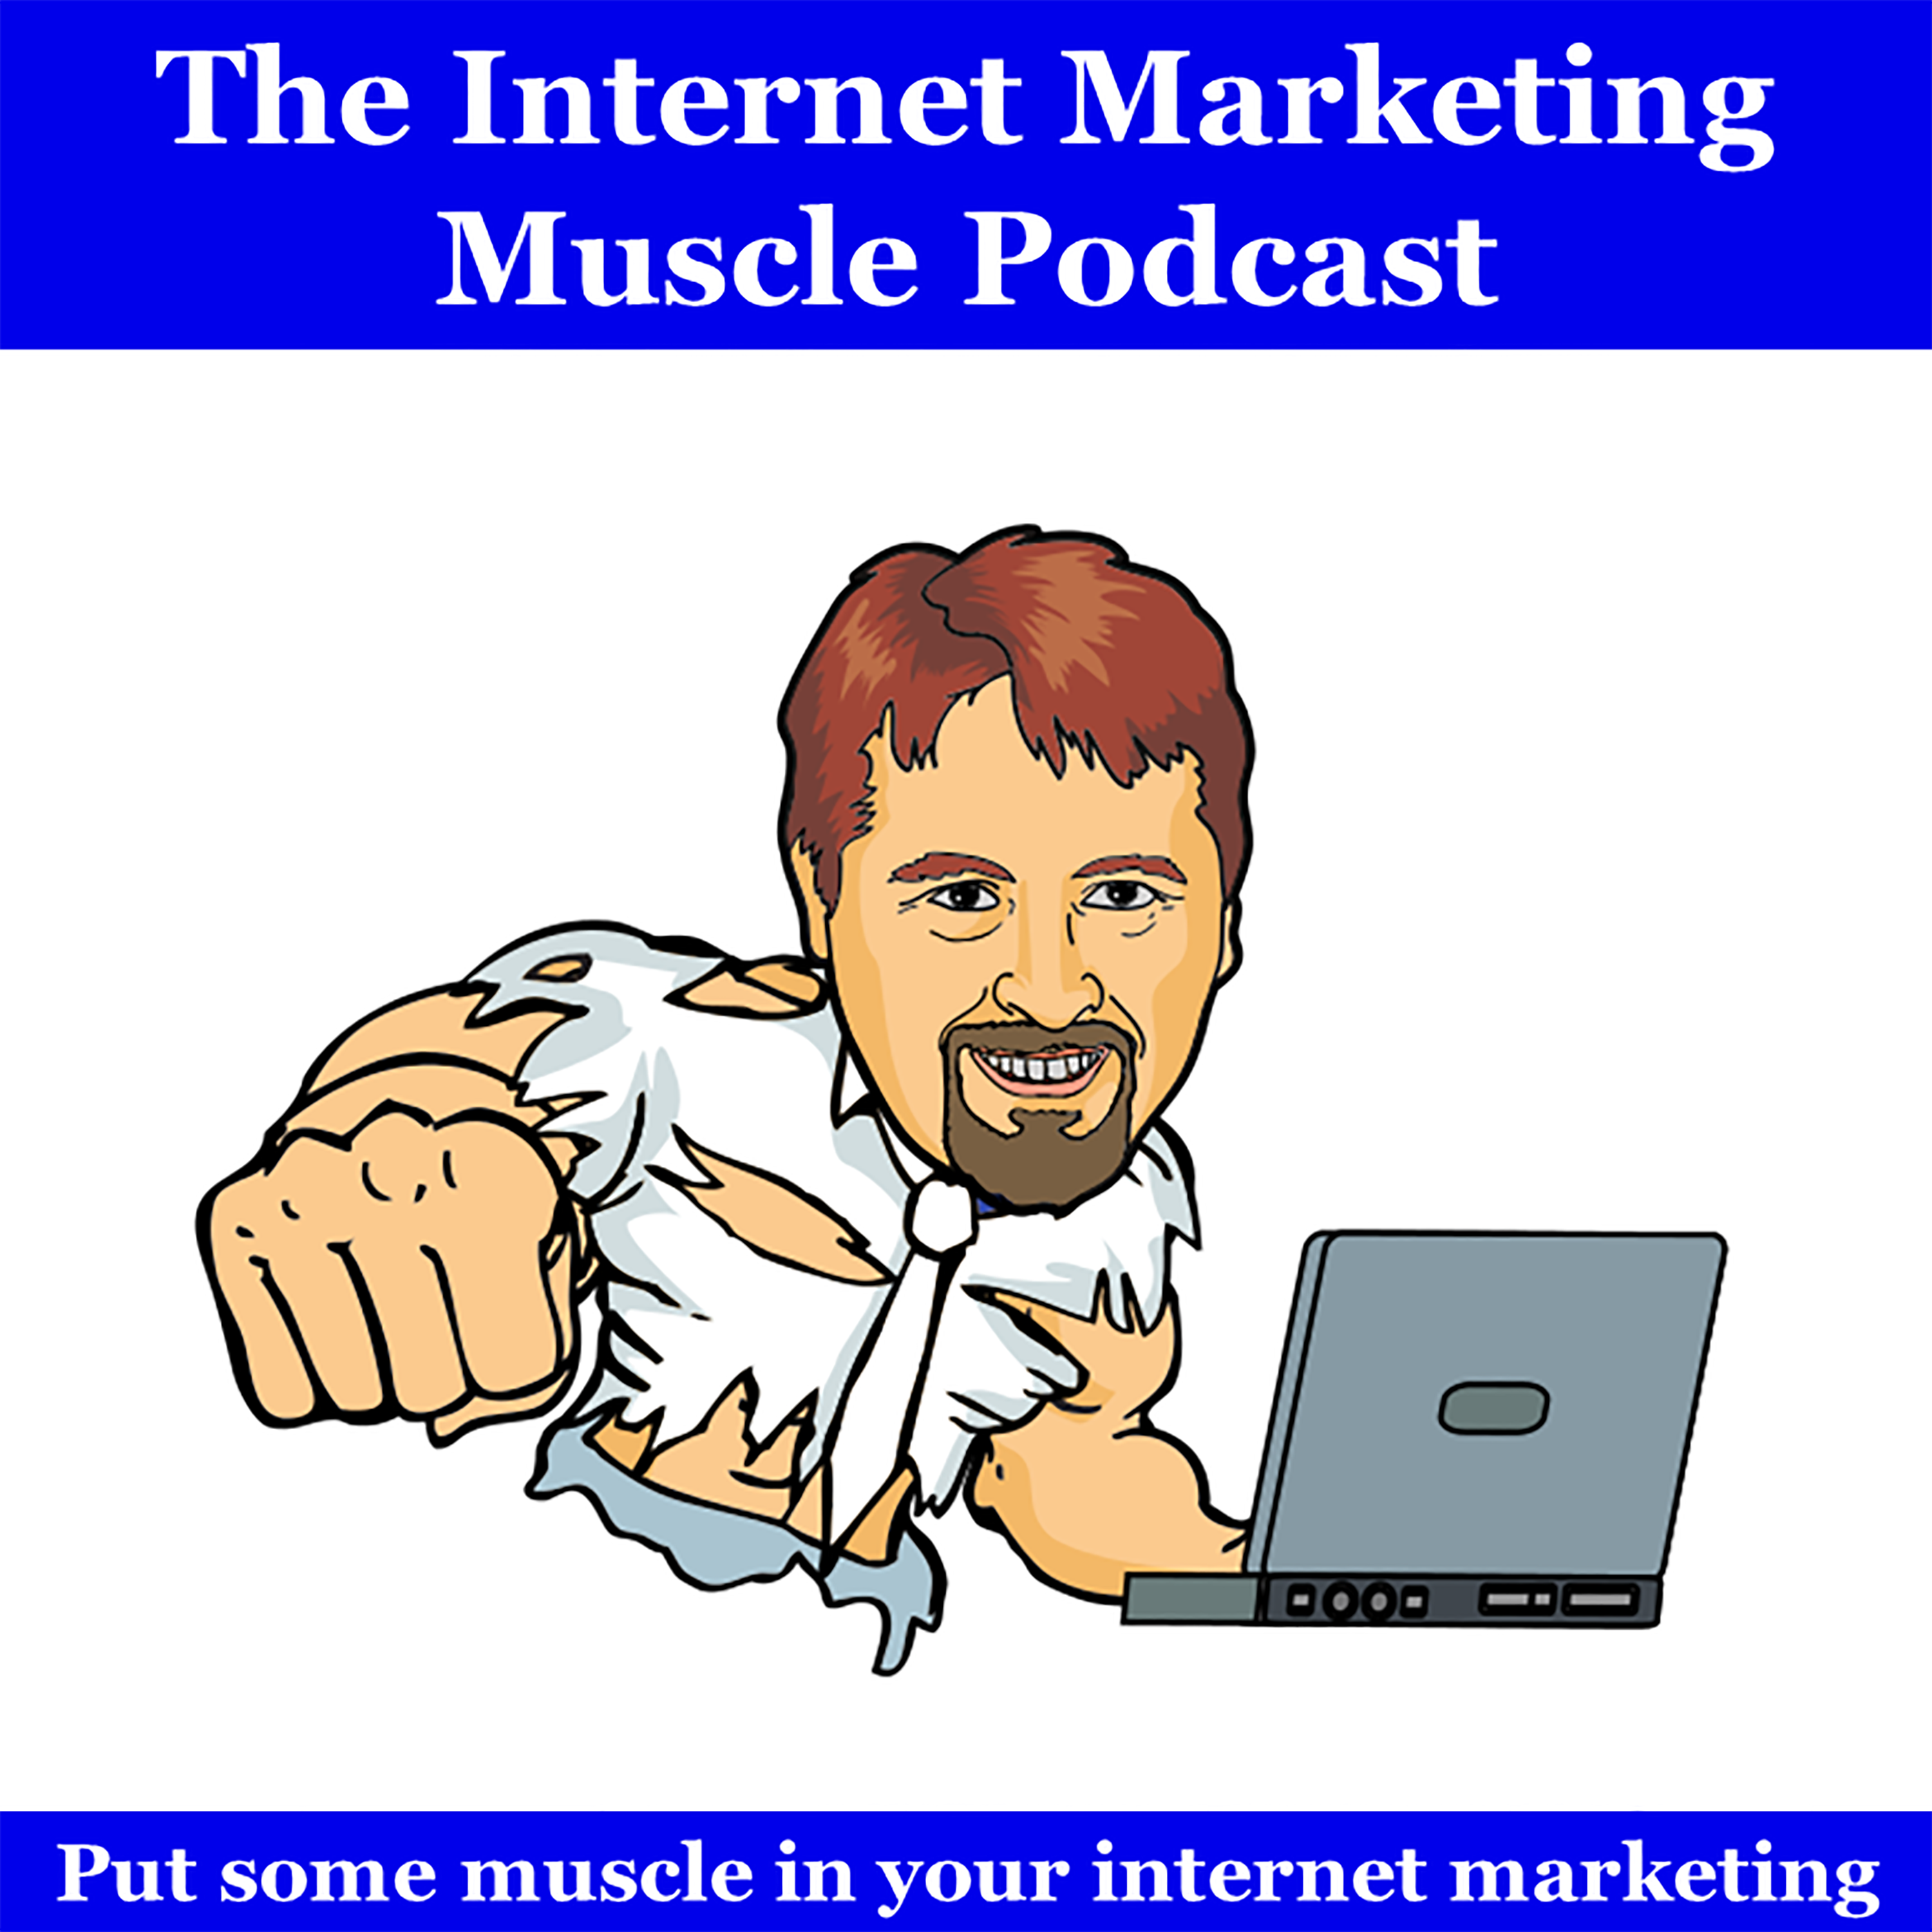 Internet Marketing Muscle Podcast